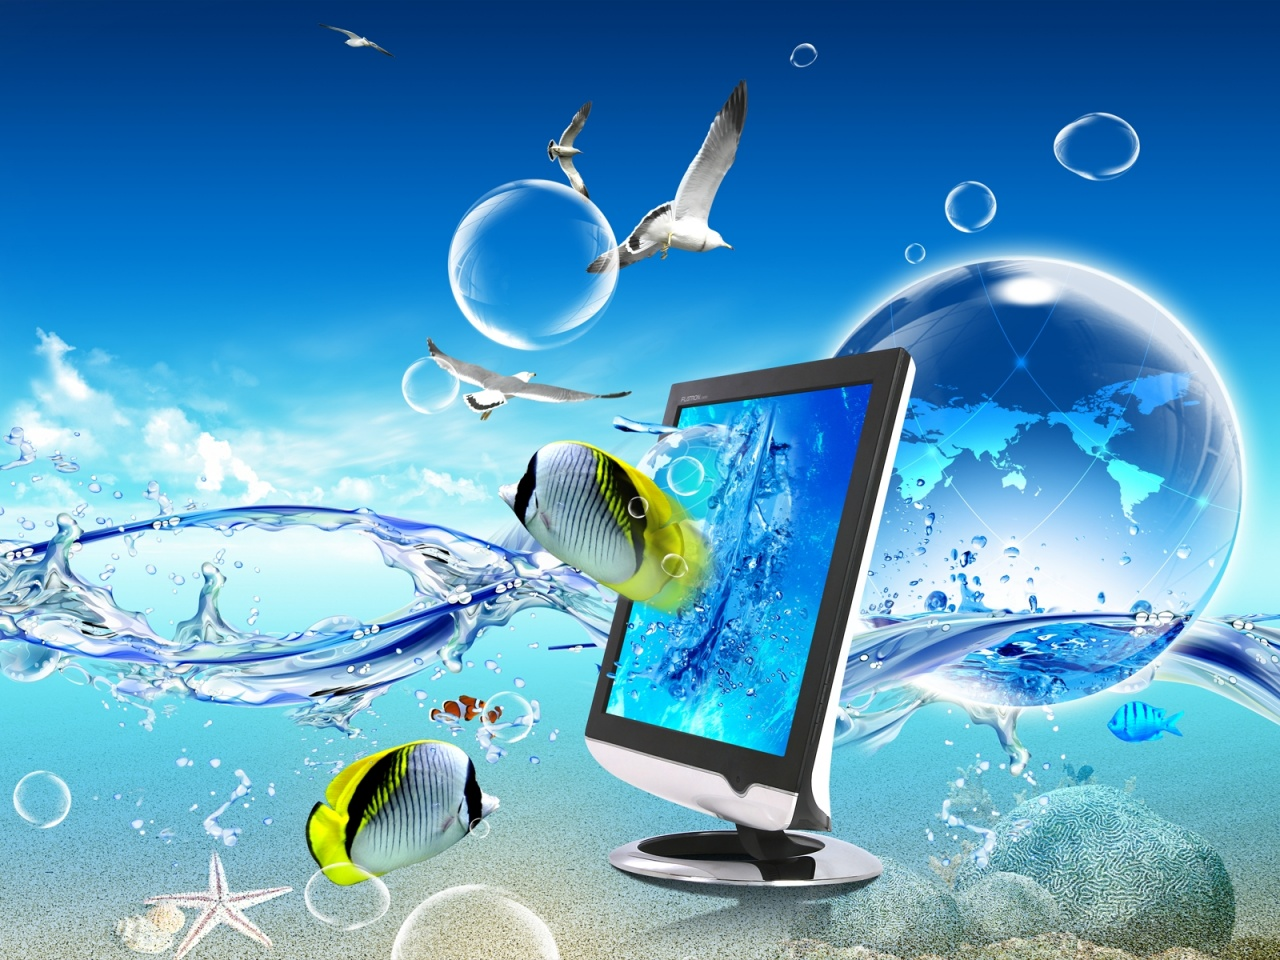 WWW Computer Wallpaper Free Download Com